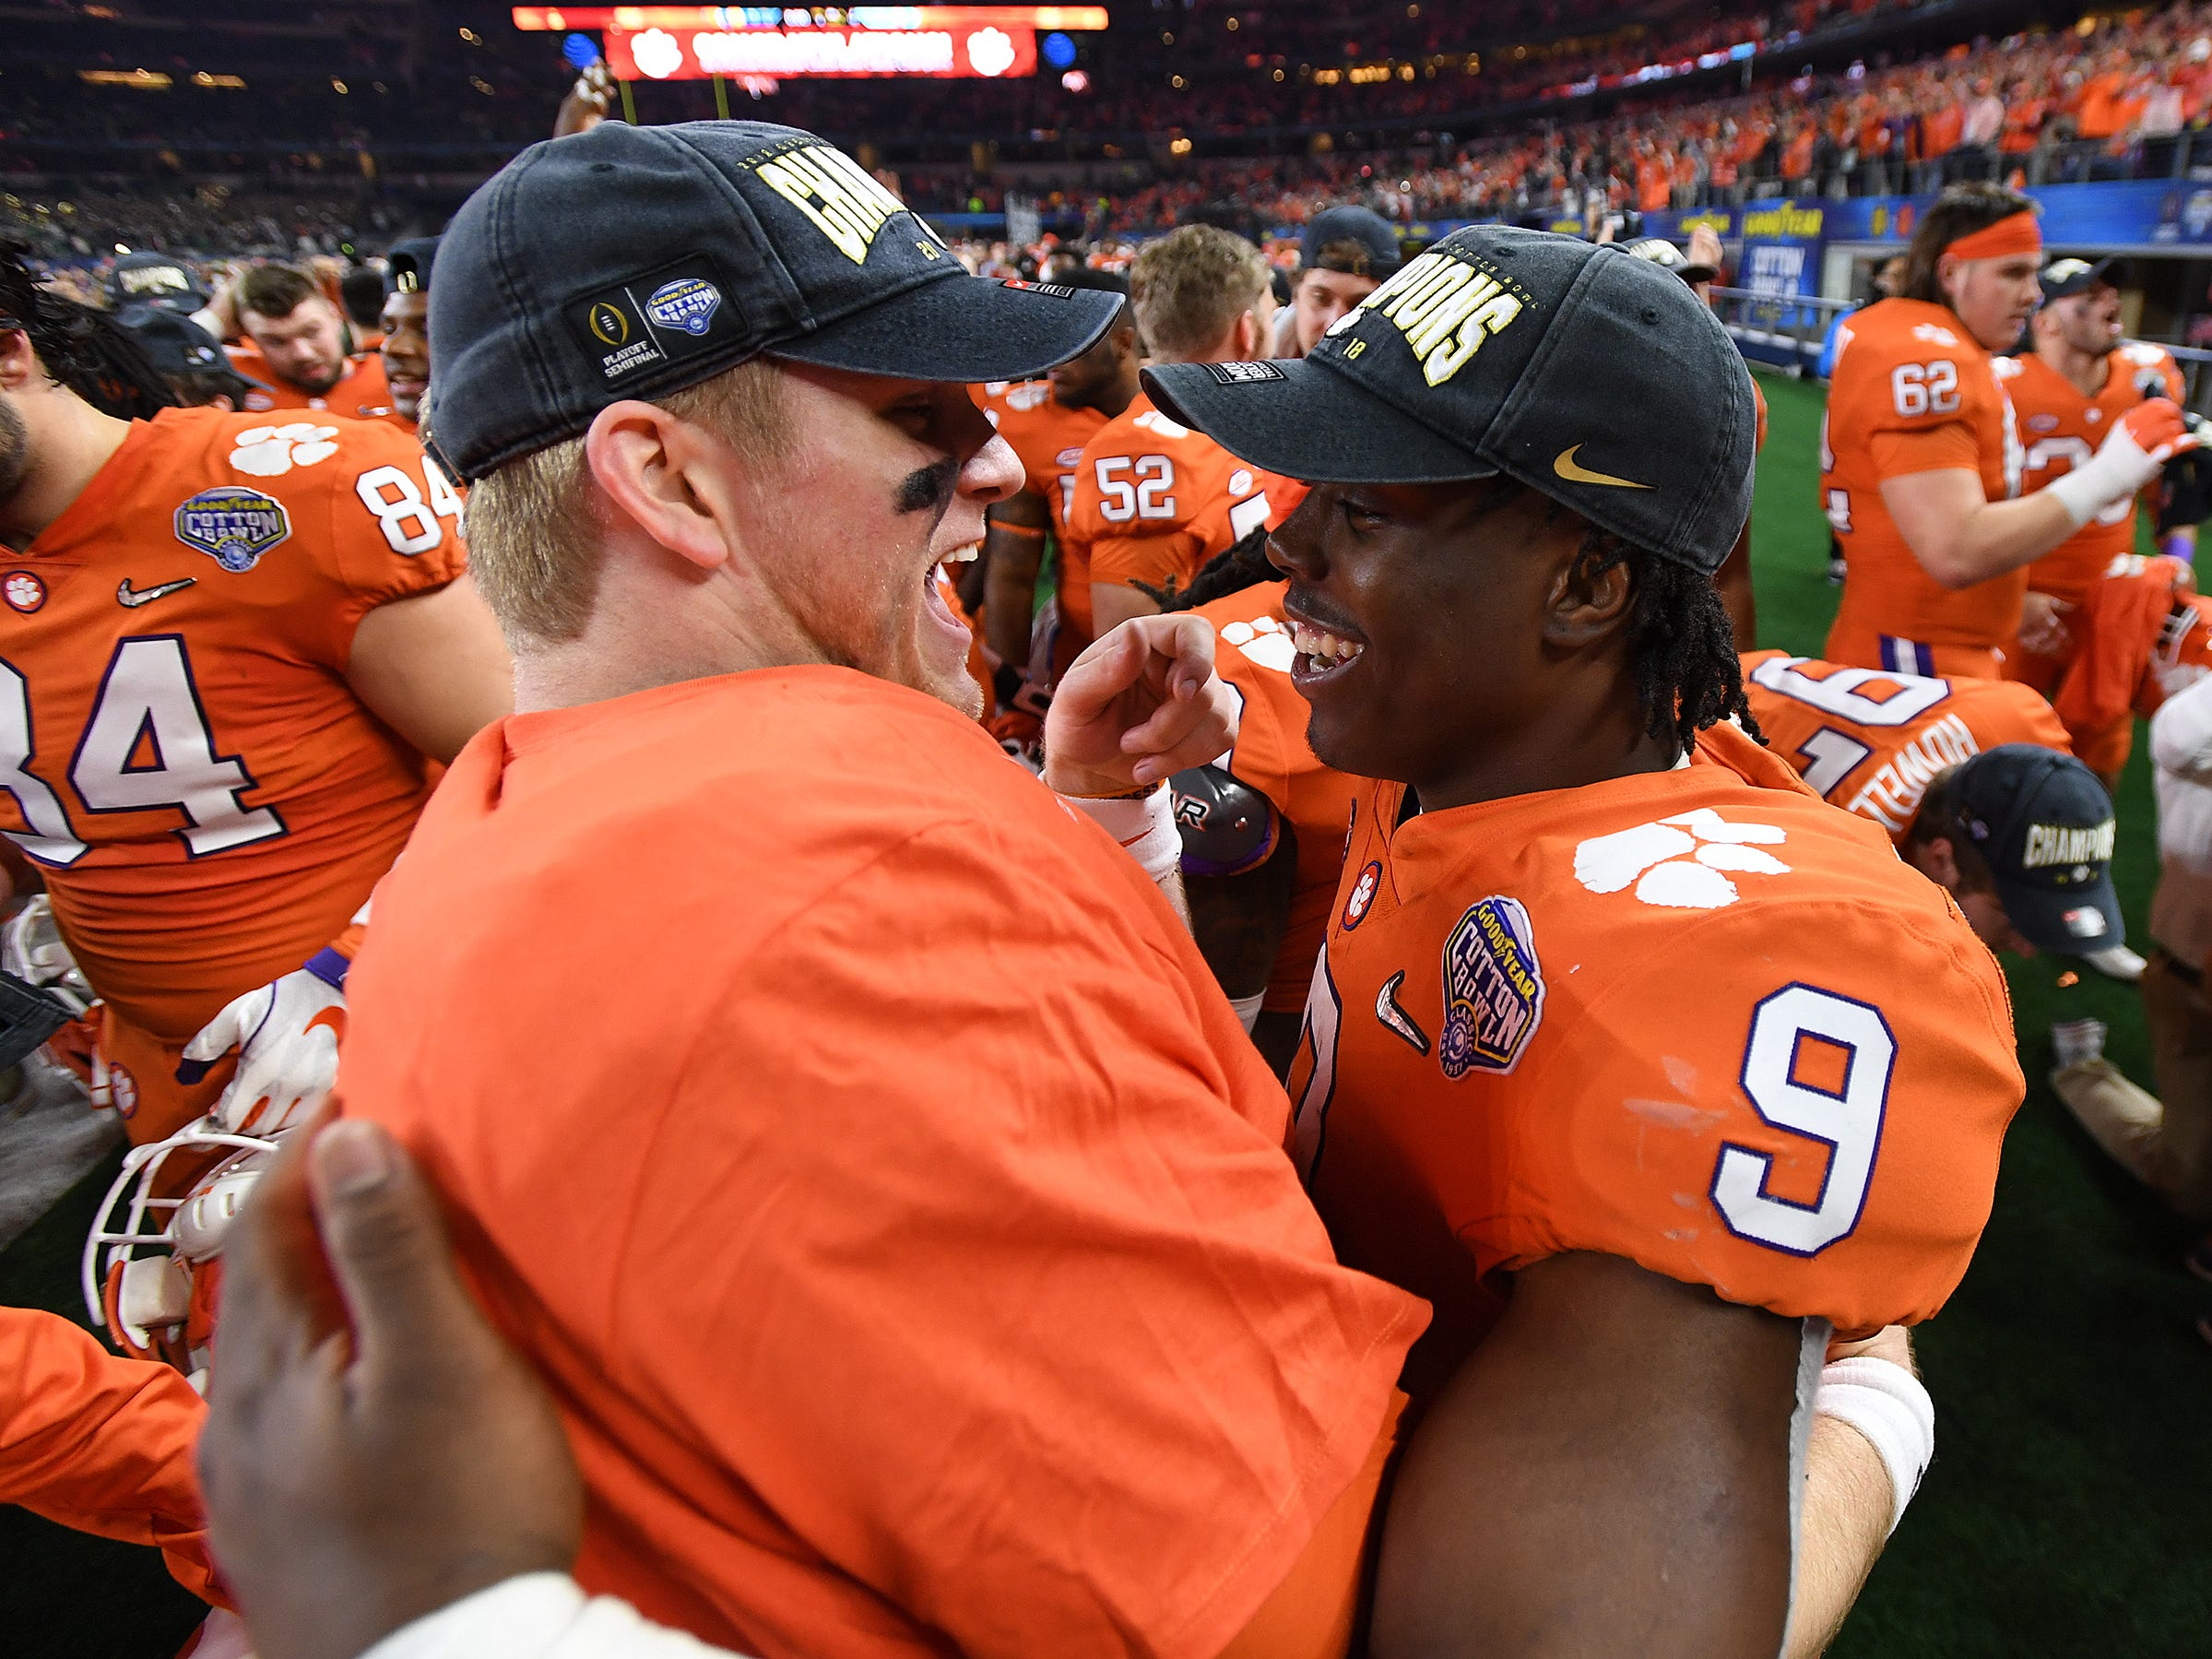 Clemson quarterback Chase Brice (7), left, hugs running back Travis Etienne (9) after the Tigers 30-3 win over Notre Dame at AT&T stadium in Arlington, TX Saturday, December 29, 2018.